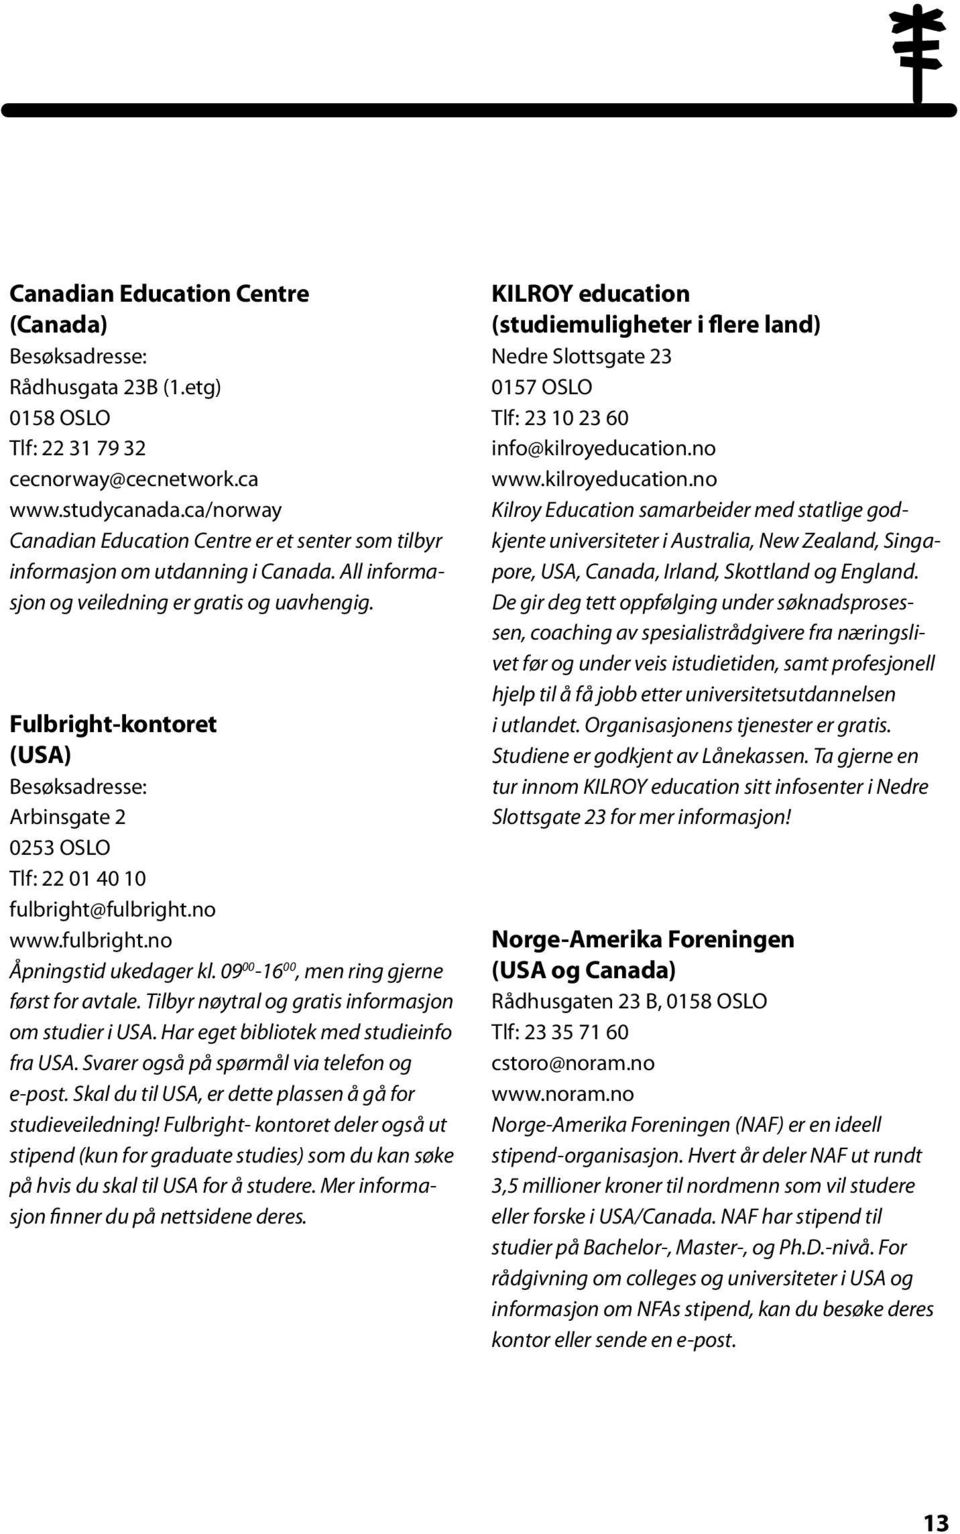 Fulbright-kontoret (USA) Besøksadresse: Arbinsgate 2 0253 OSLO Tlf: 22 01 40 10 fulbright@fulbright.no www.fulbright.no Åpningstid ukedager kl. 09 00-16 00, men ring gjerne først for avtale.